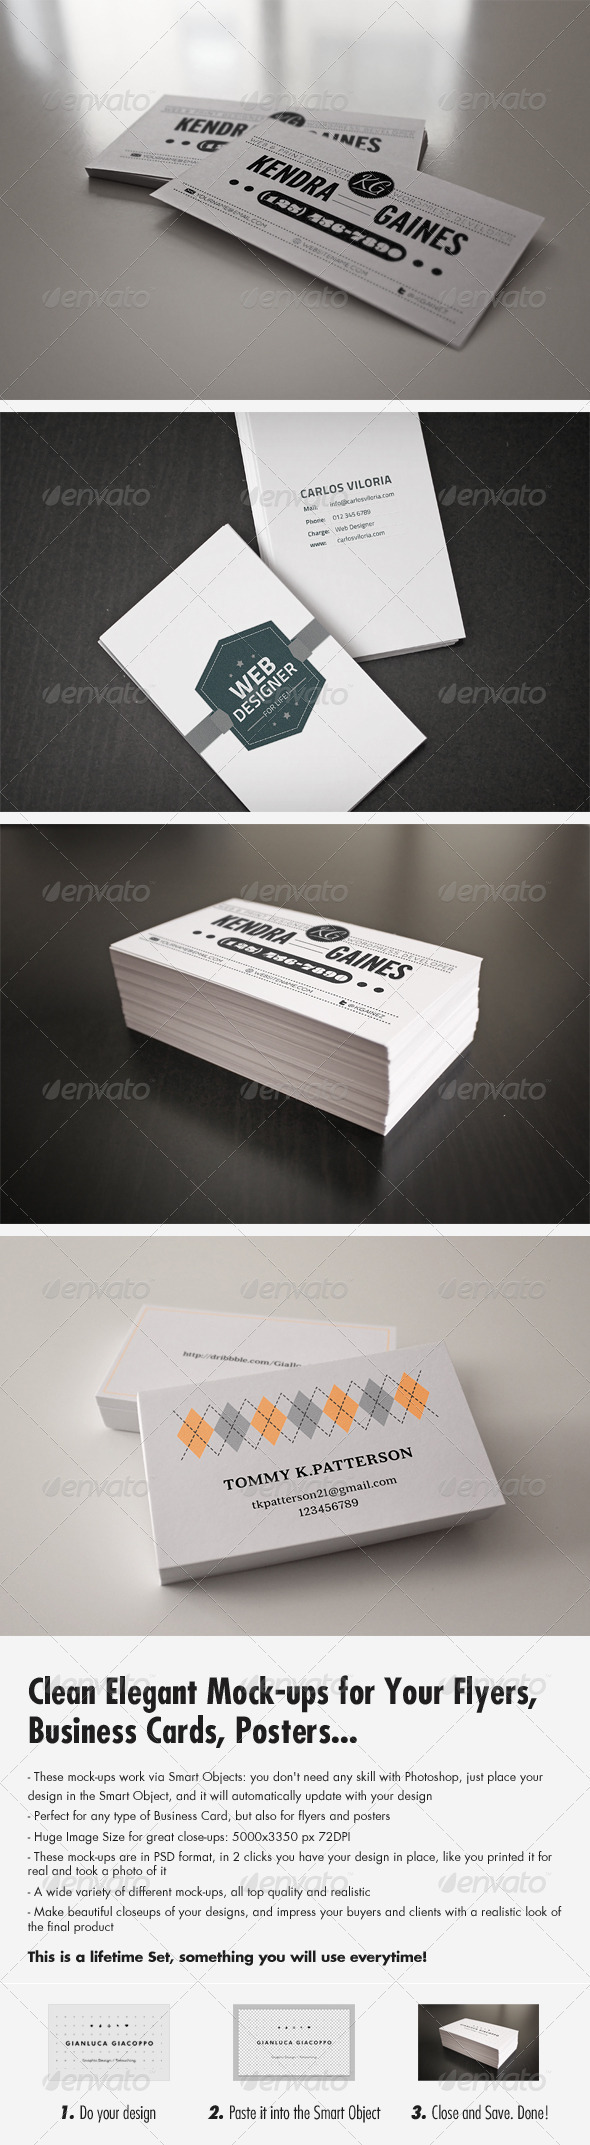 Flyer business card clean realistic mock up set 1 by giallo flyer business card clean realistic mock up set 1 business cards print reheart Images